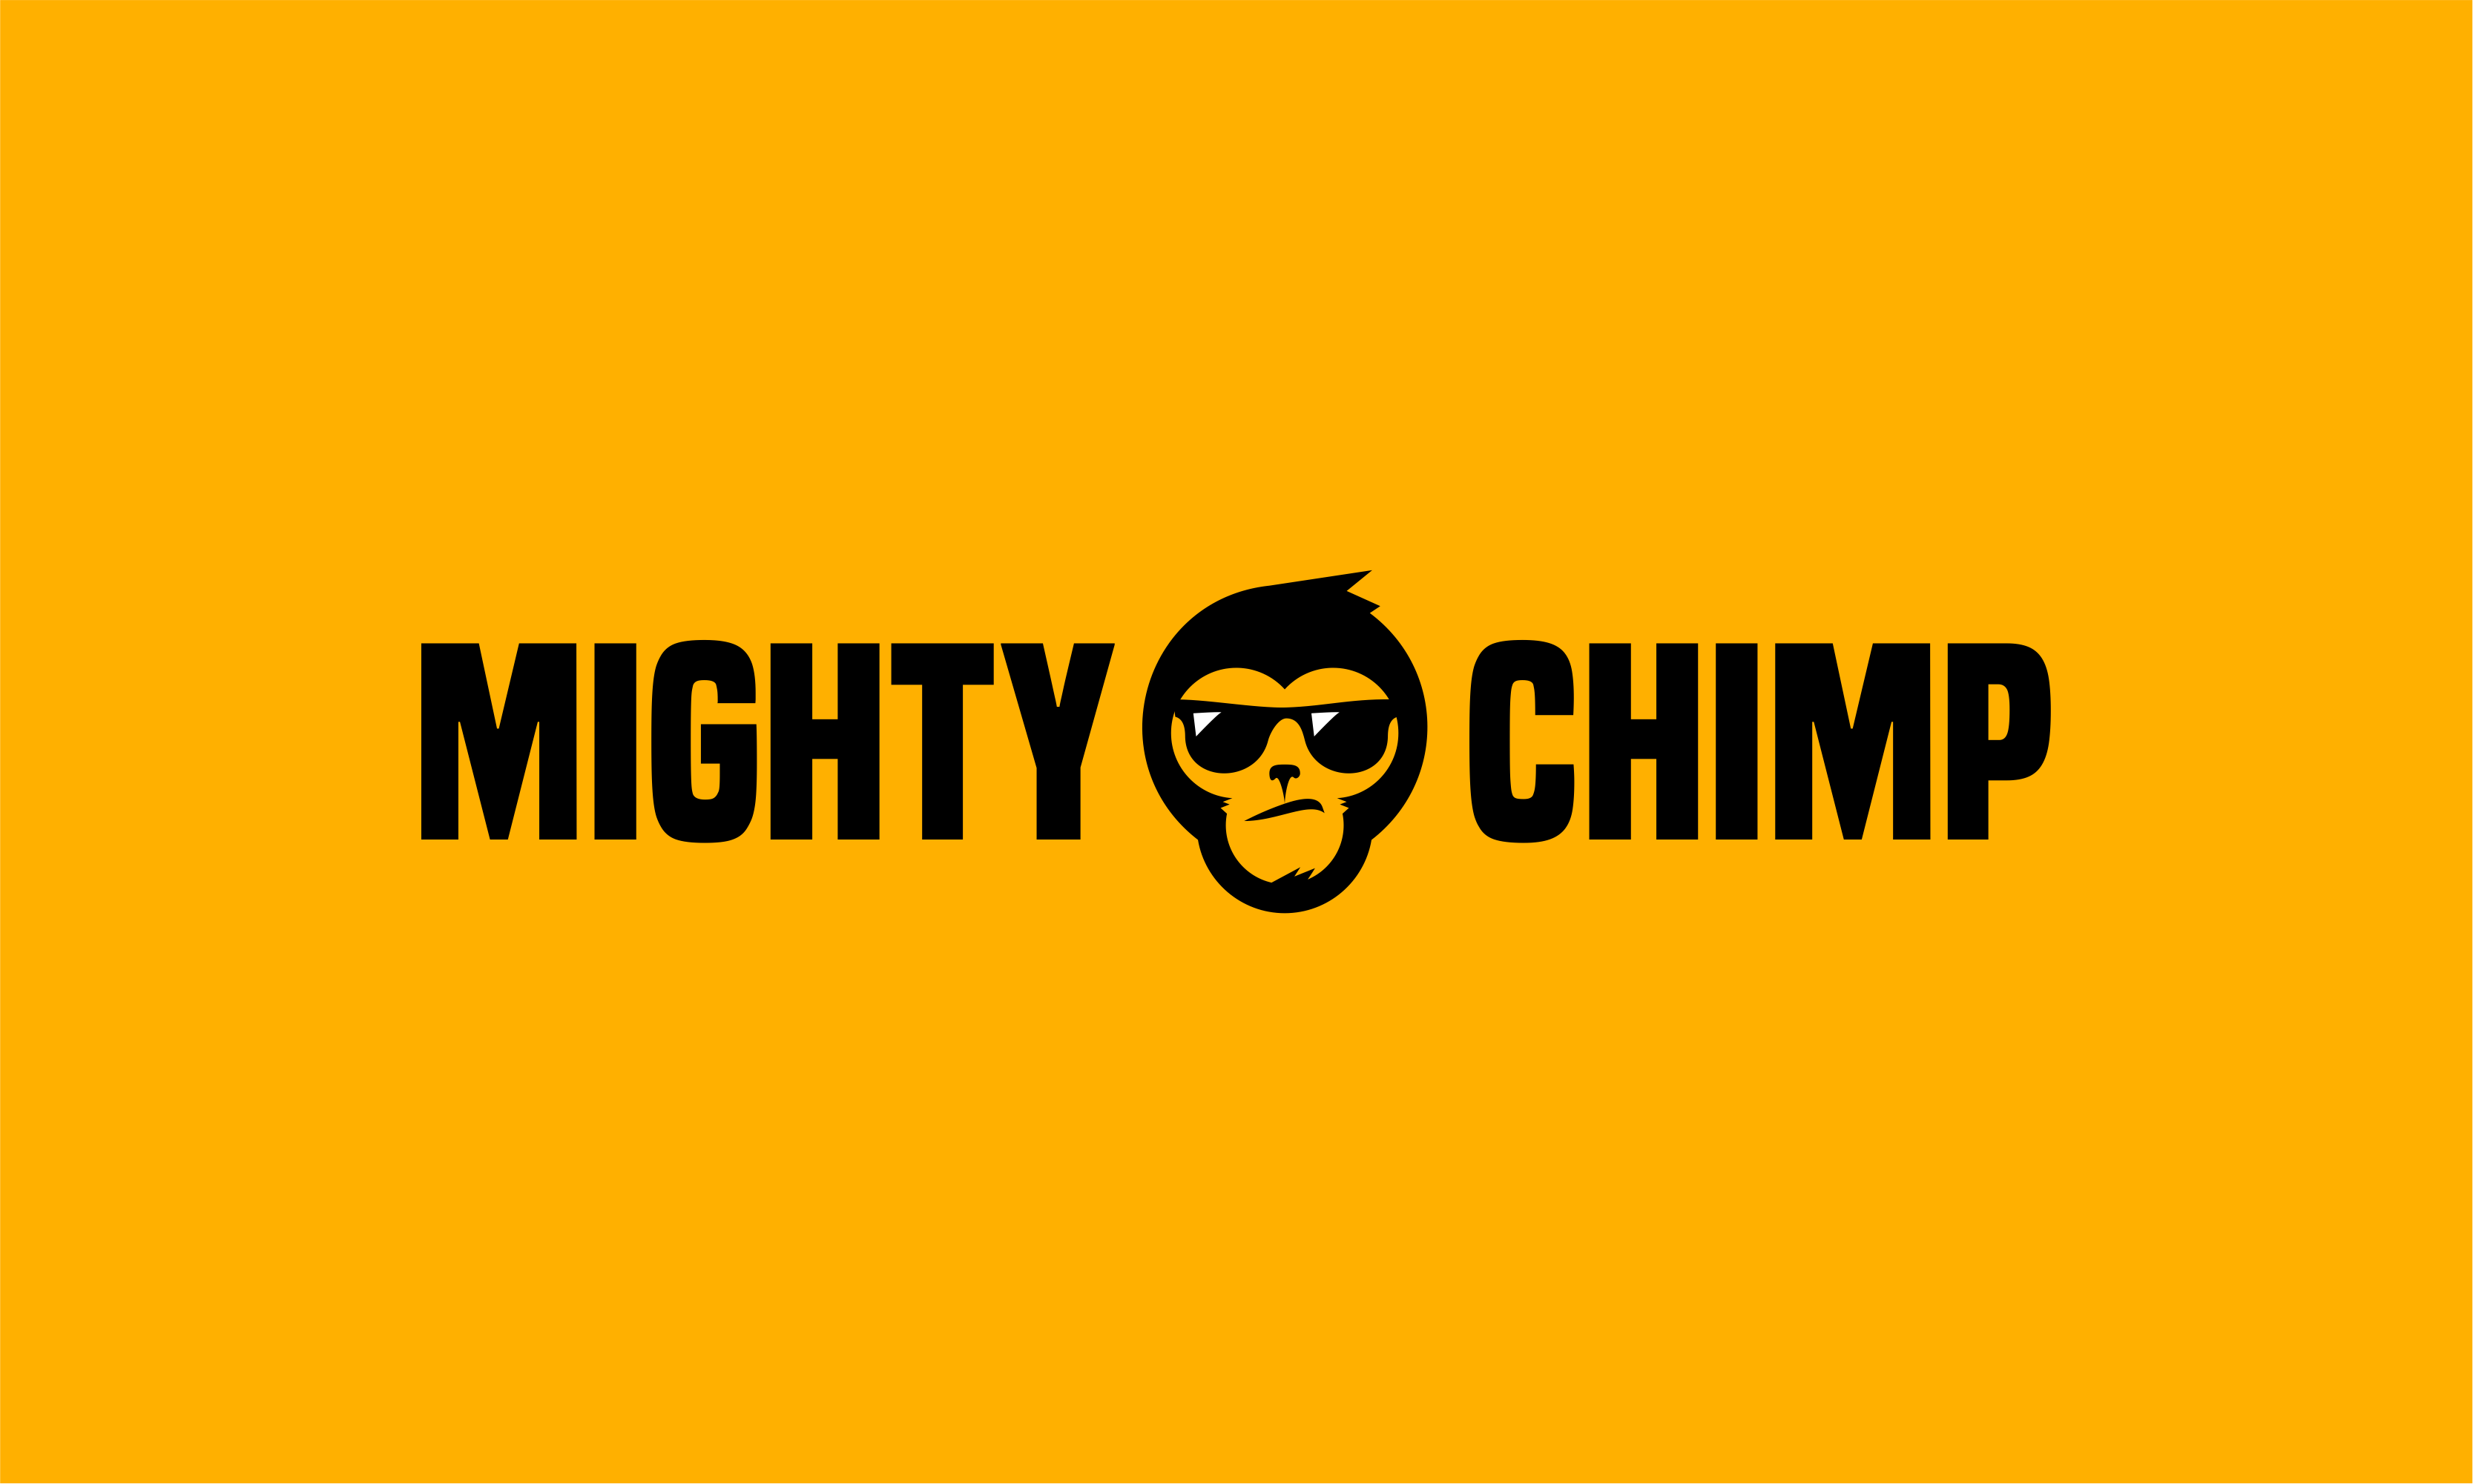 Mightychimp